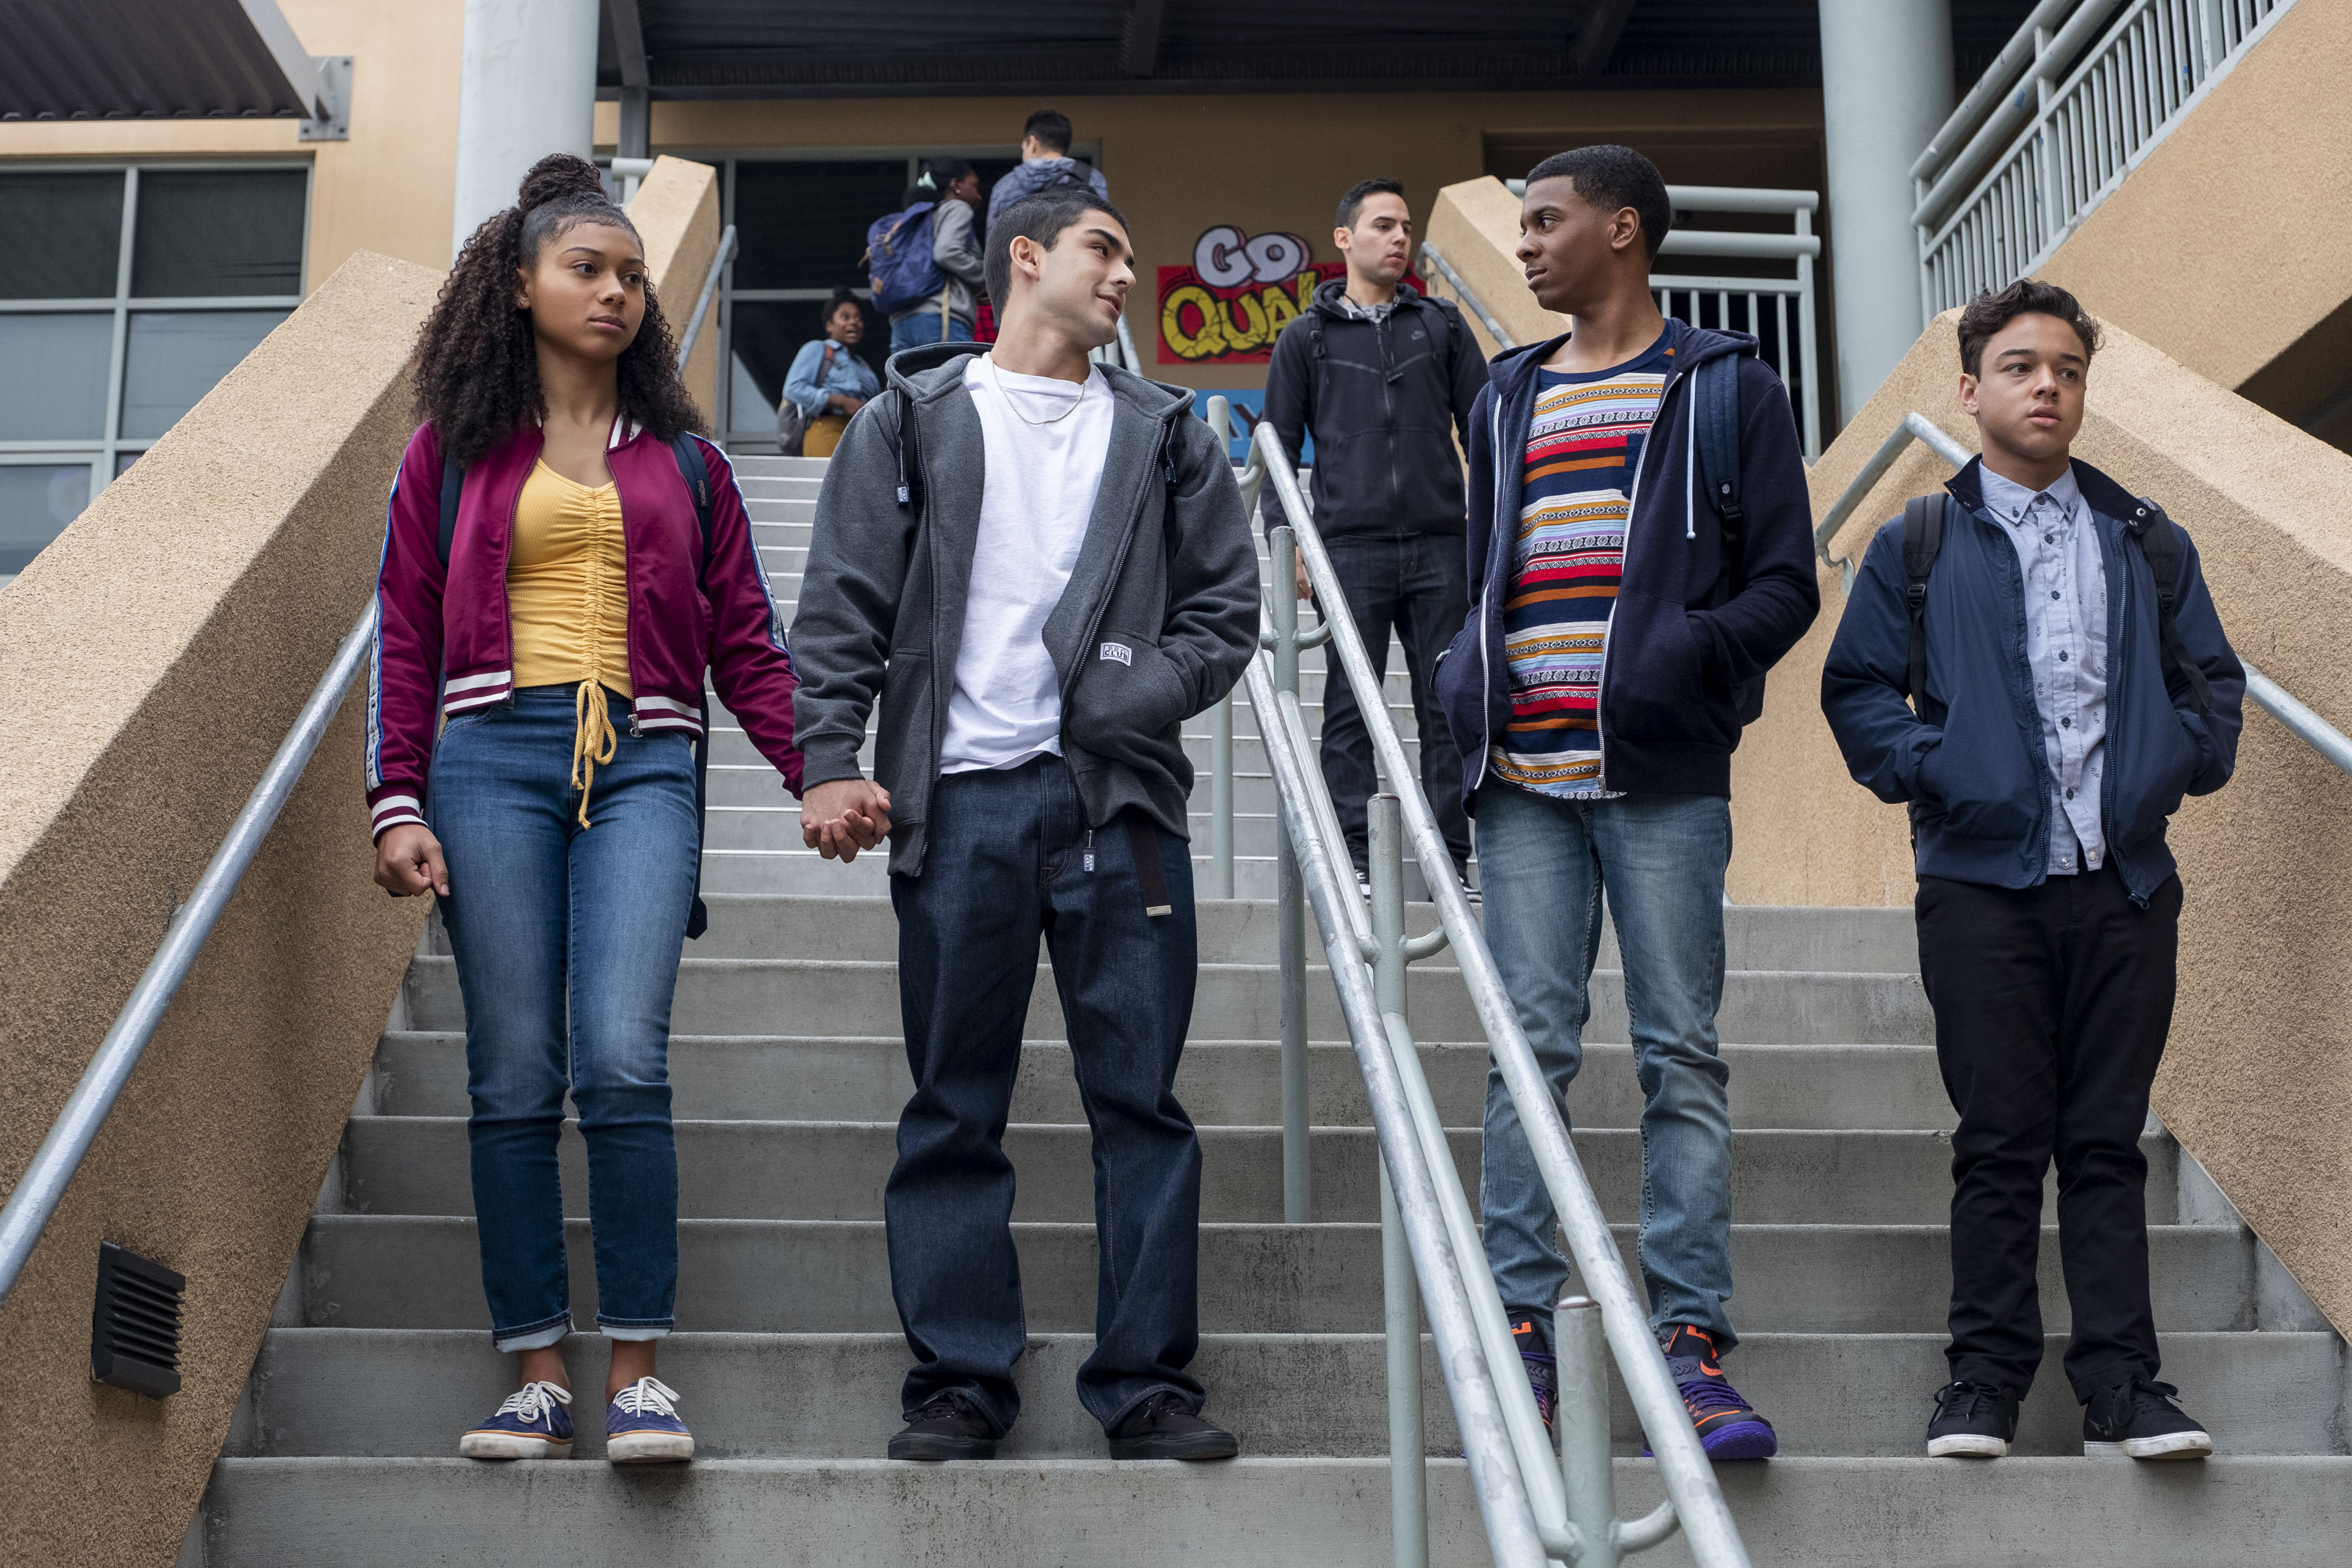 On My Block' Season 3 Renewed: Trailer, Cast, Release Date, and